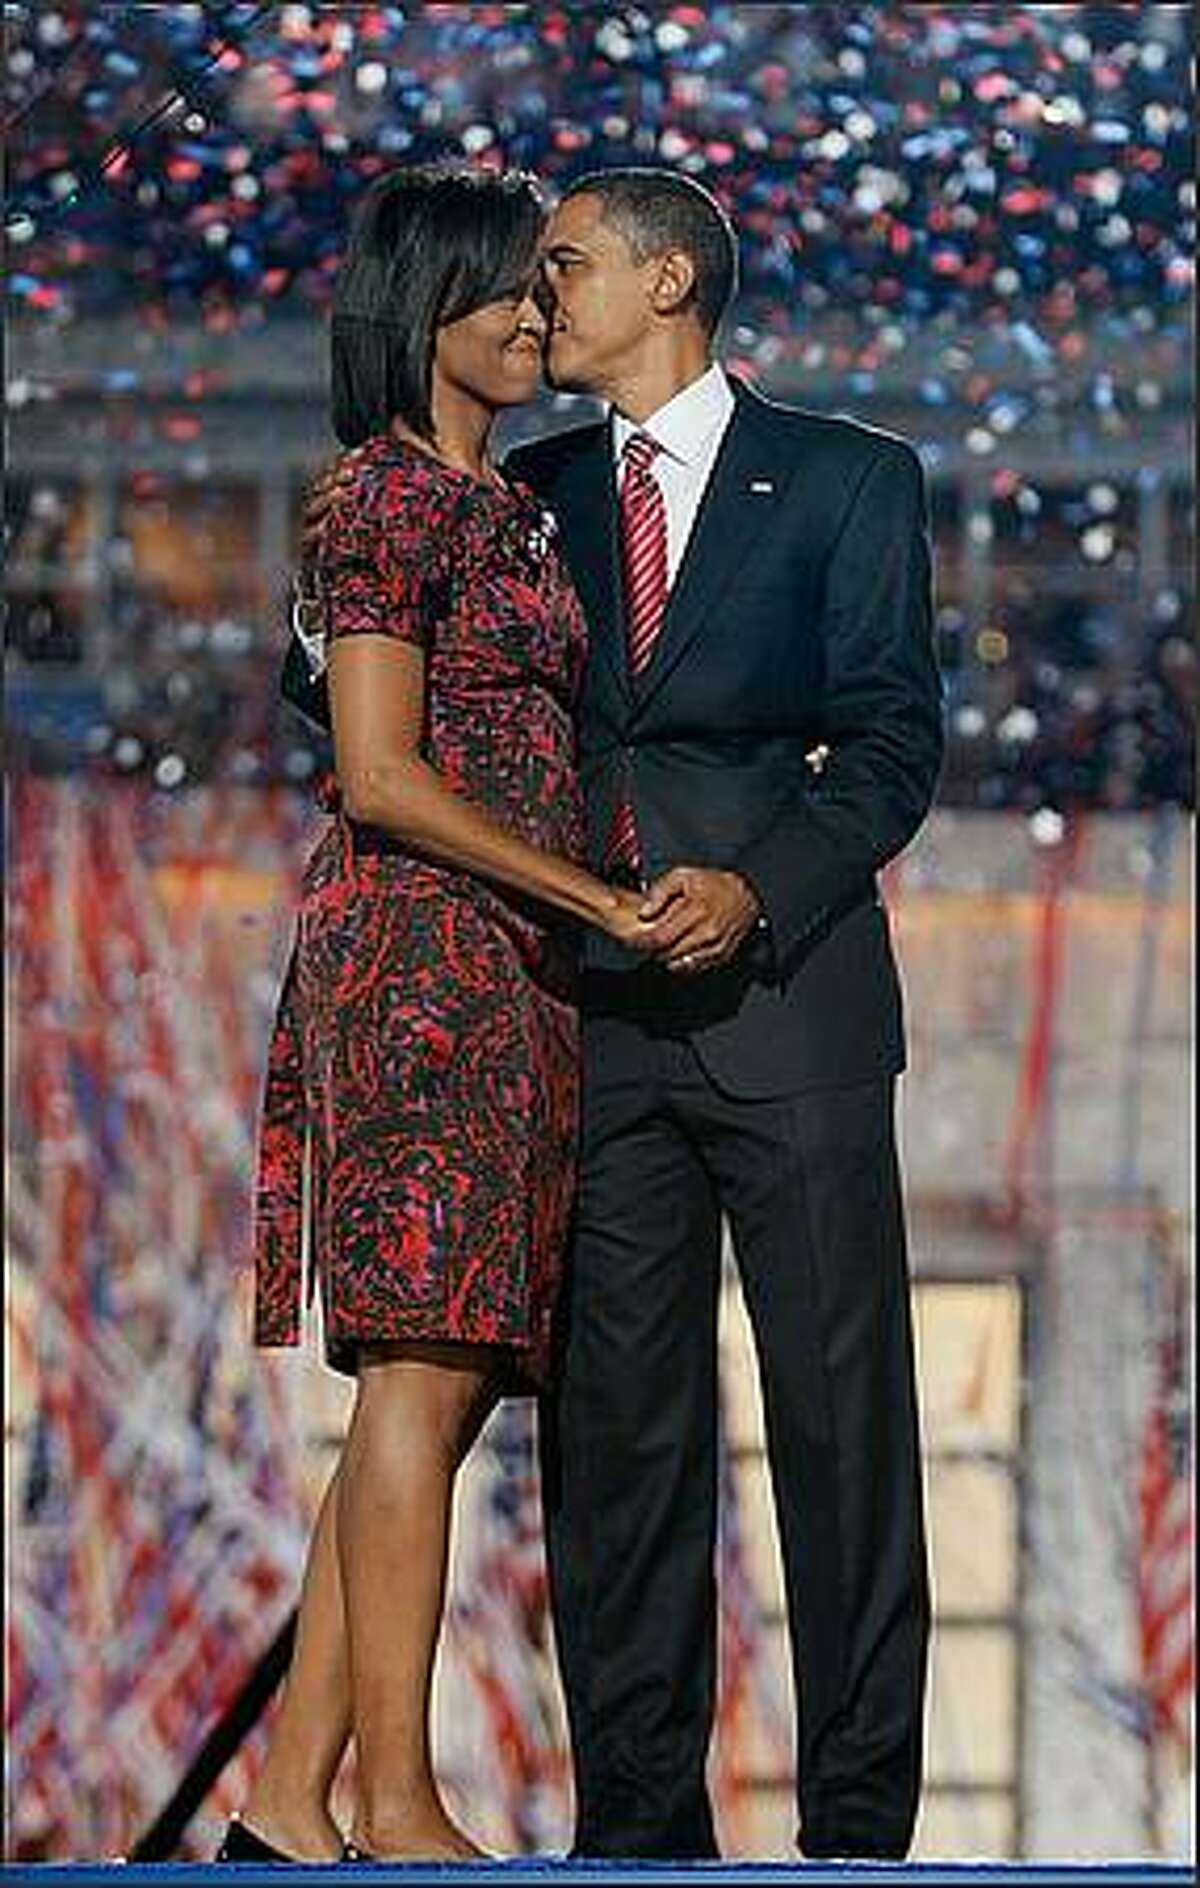 Democratic U.S. Presidential nominee Sen. Barack Obama (D-IL) (R) kisses his wife Michelle Obama after his speech on day four of the Democratic National Convention (DNC) at Invesco Field at Mile High in Denver, Colorado. U.S. Sen. Barack Obama (D-IL) is the first African-American to be officially nominated as a candidate for U.S. president by a major party. (Photo by Joe Raedle/Getty Images)